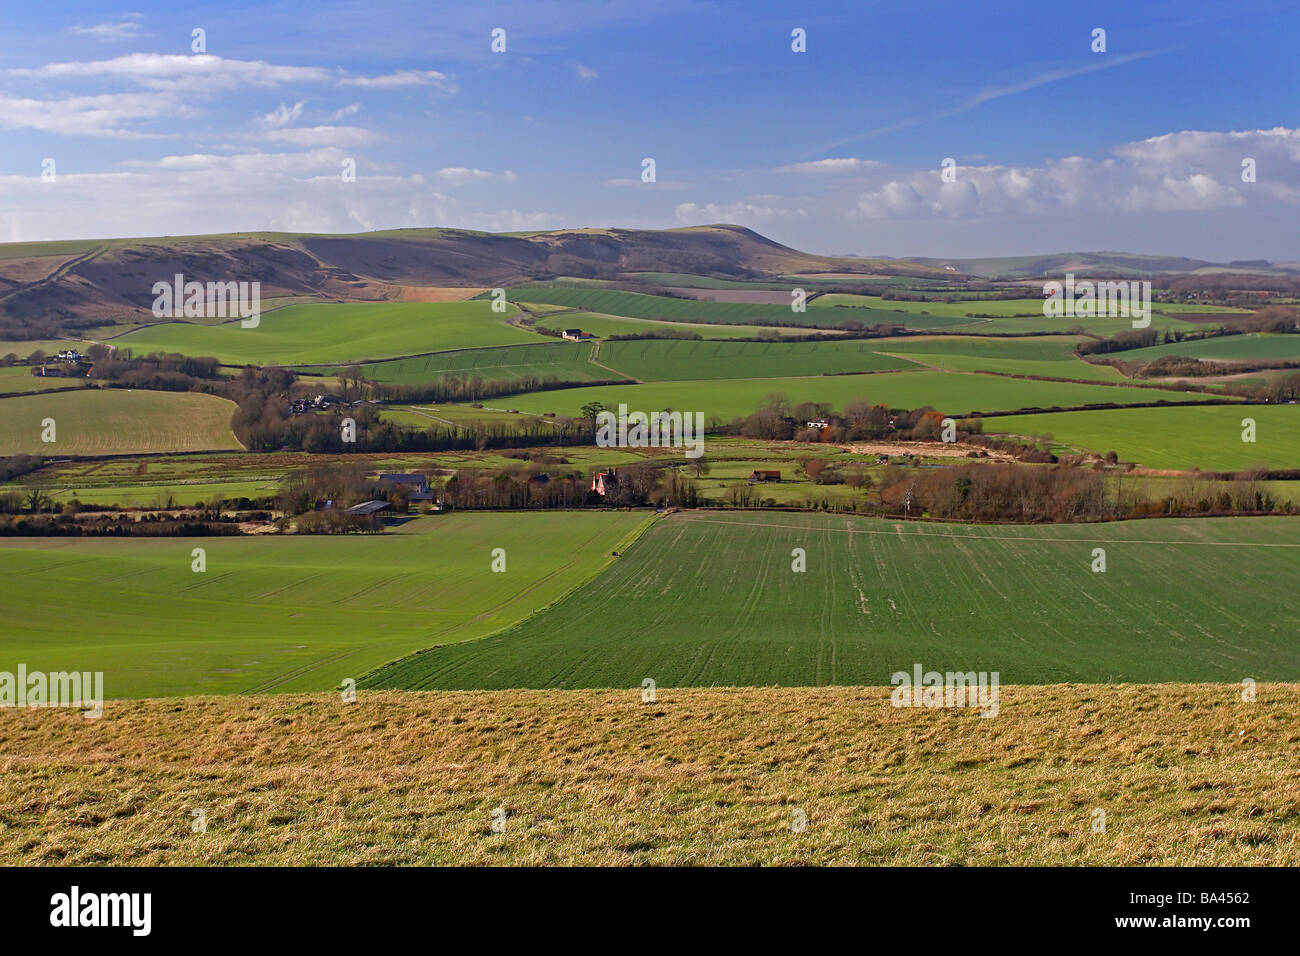 South Downs - West of the Long Man of Wilmington Sussex - Stock Image